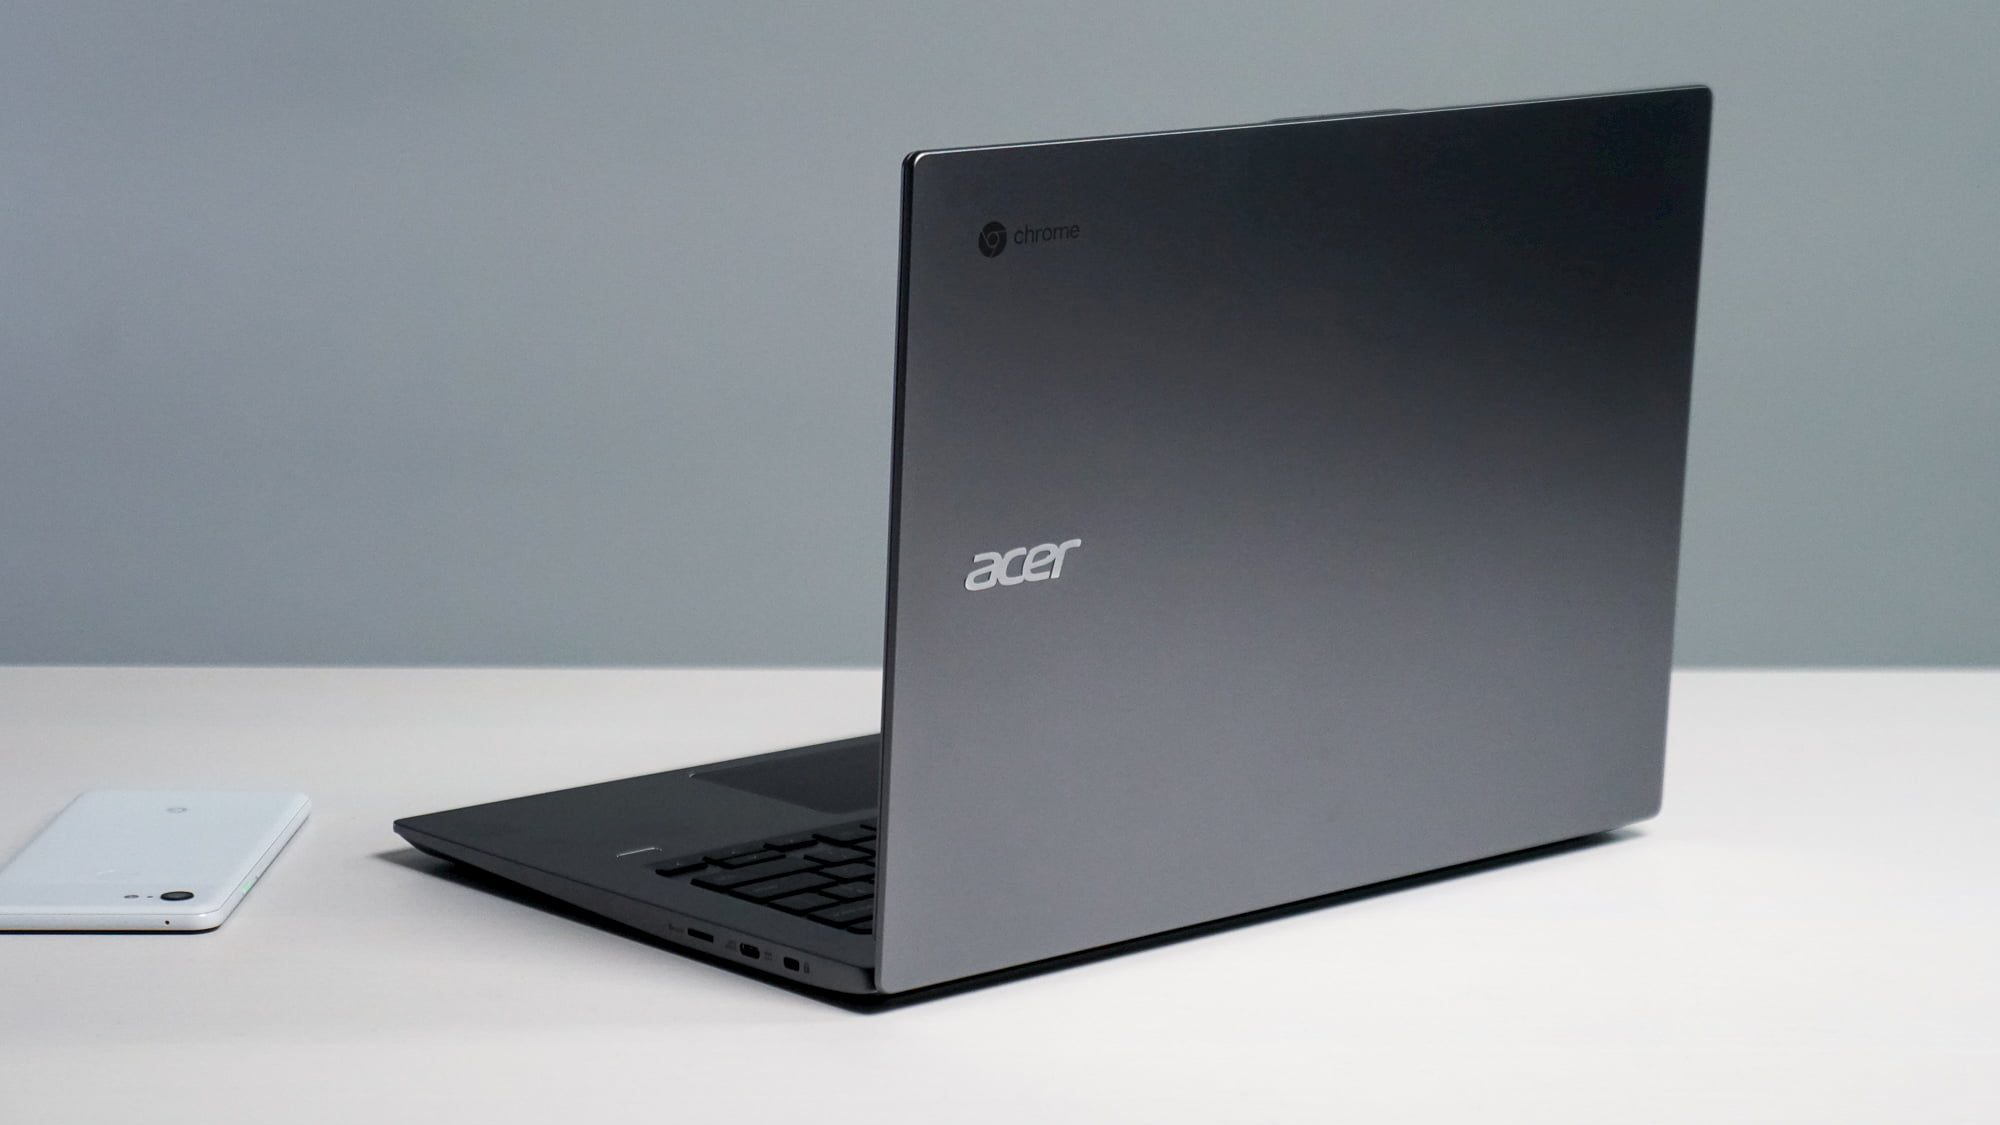 Deal Alert: Grab the all-aluminum Core i3 Acer Chromebook 714 and save $100